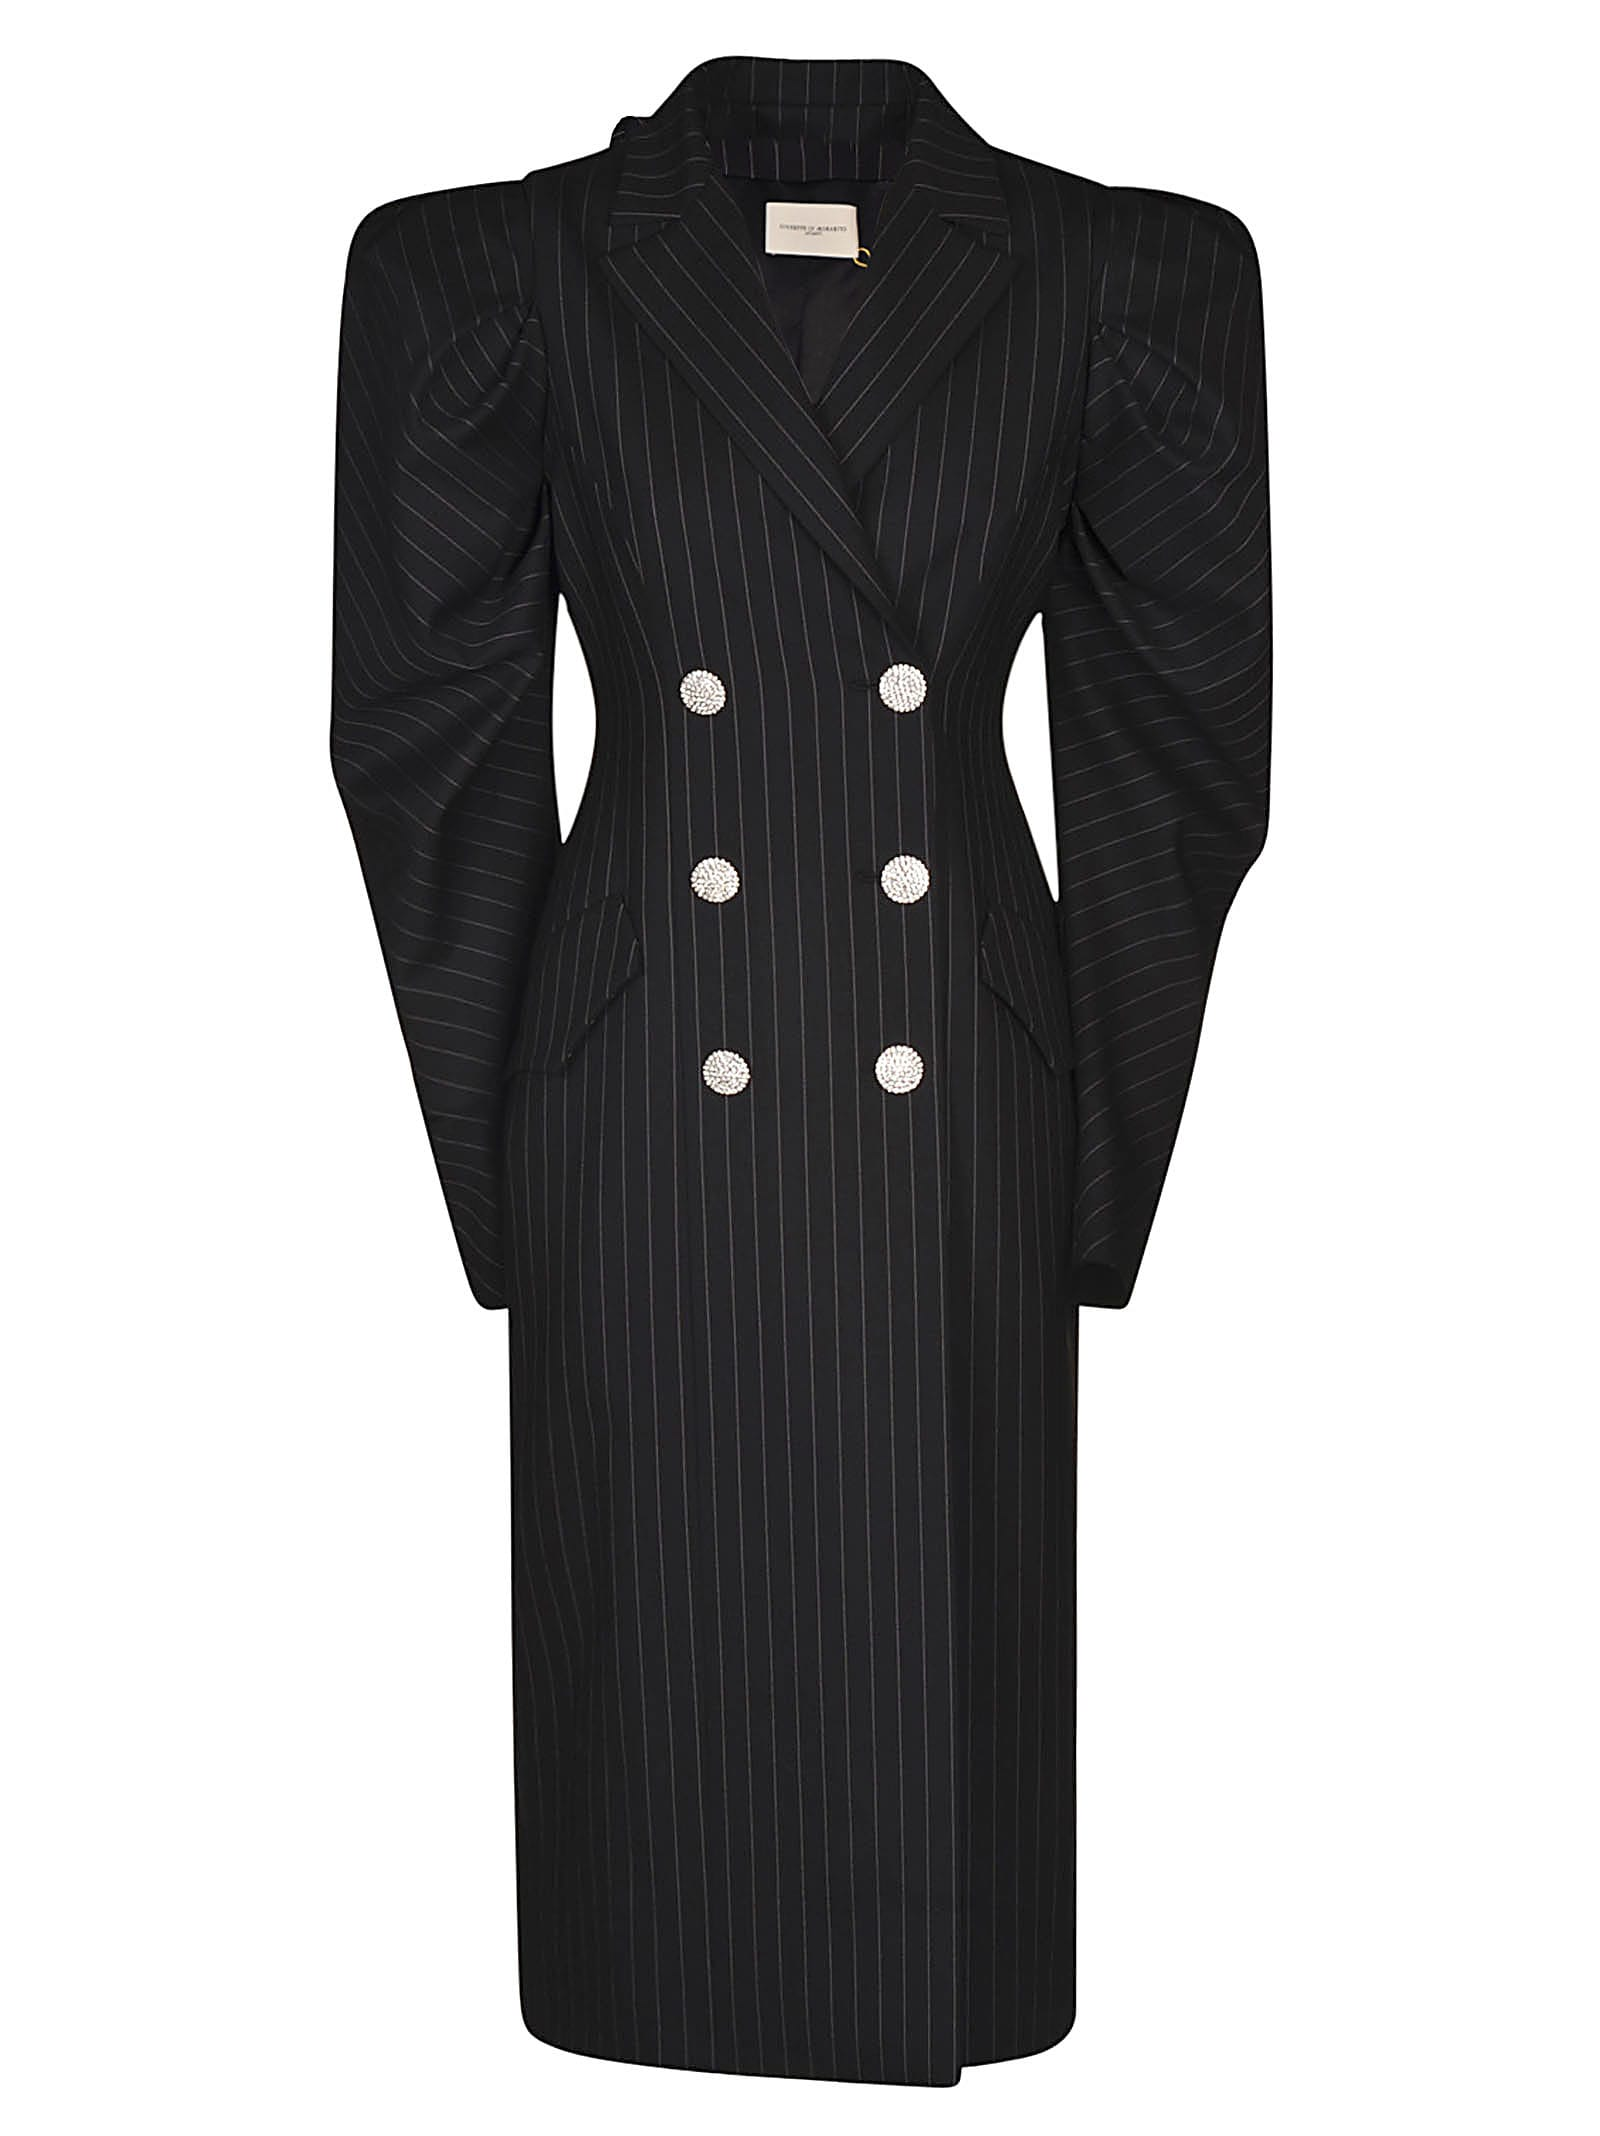 Buy Giuseppe di Morabito Double-breasted Stripe Dress online, shop Giuseppe di Morabito with free shipping